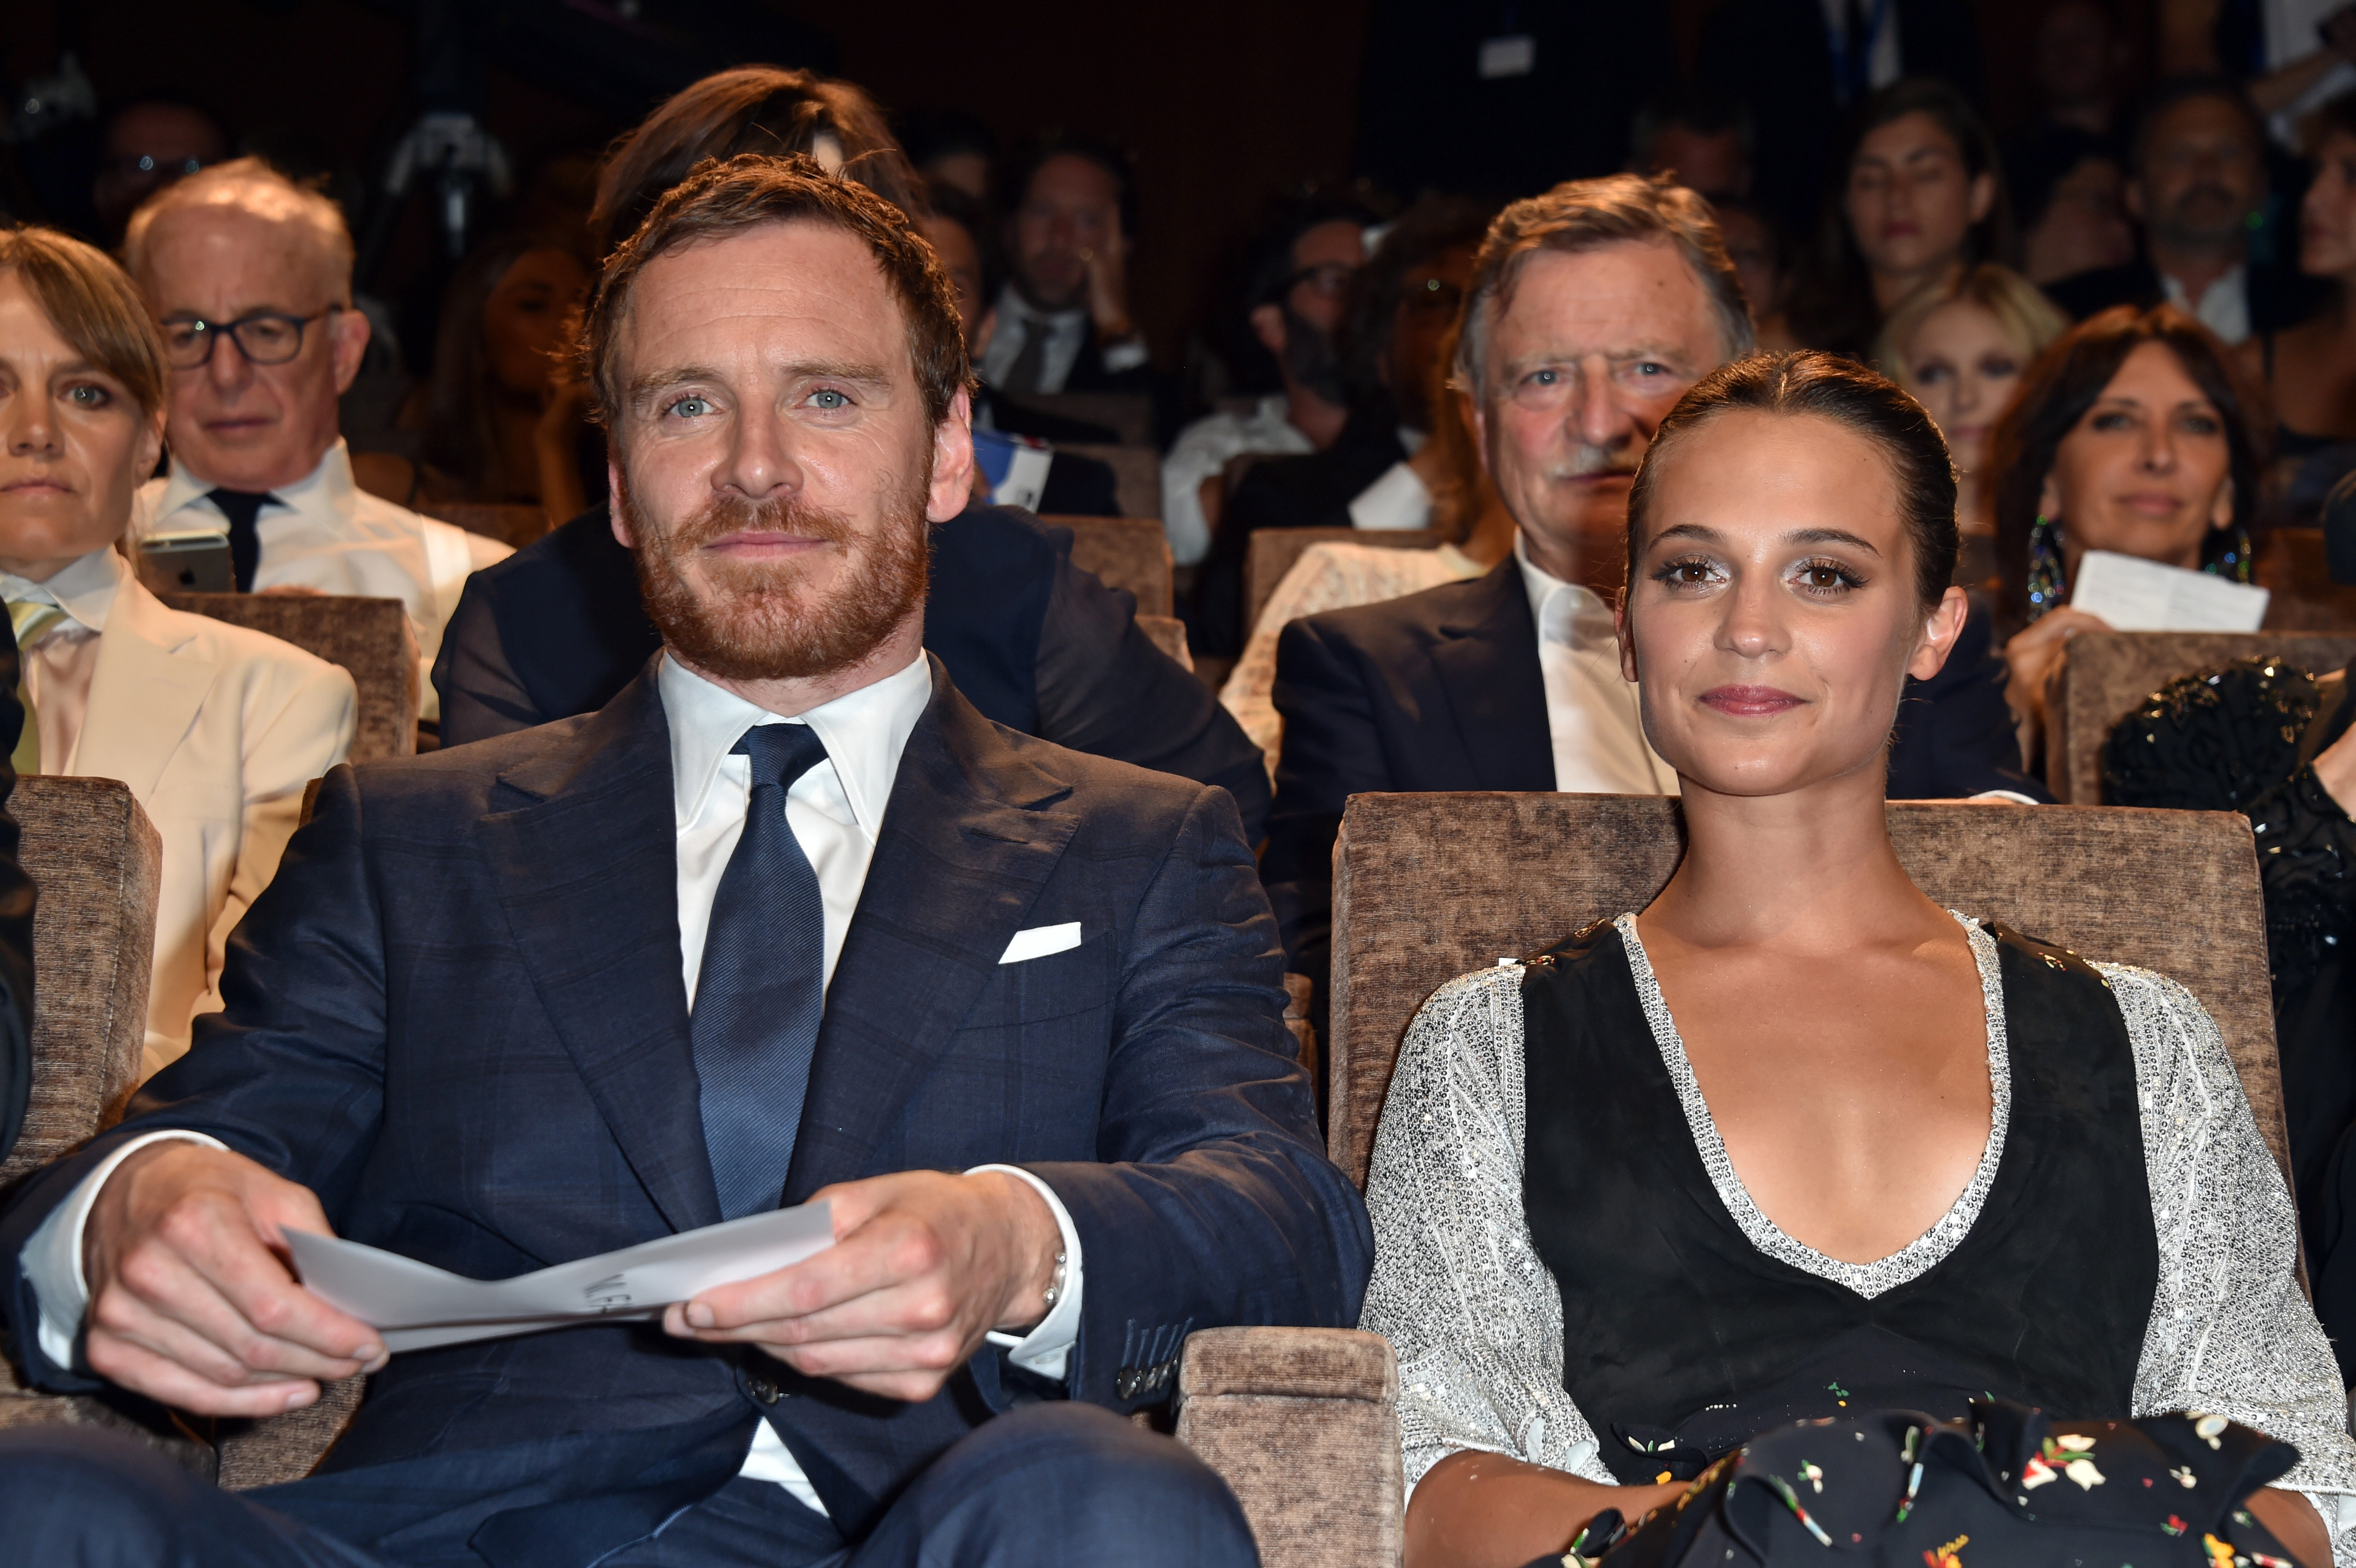 VENICE, ITALY - SEPTEMBER 01:  Actors Michael Fassbender and Alicia Vikander attend the premiere of 'The Light Between Oceans' during the 73rd Venice Film Festival at Sala Grande on September 2, 2016 in Venice, Italy.  (Photo by Pascal Le Segretain/Getty Images)